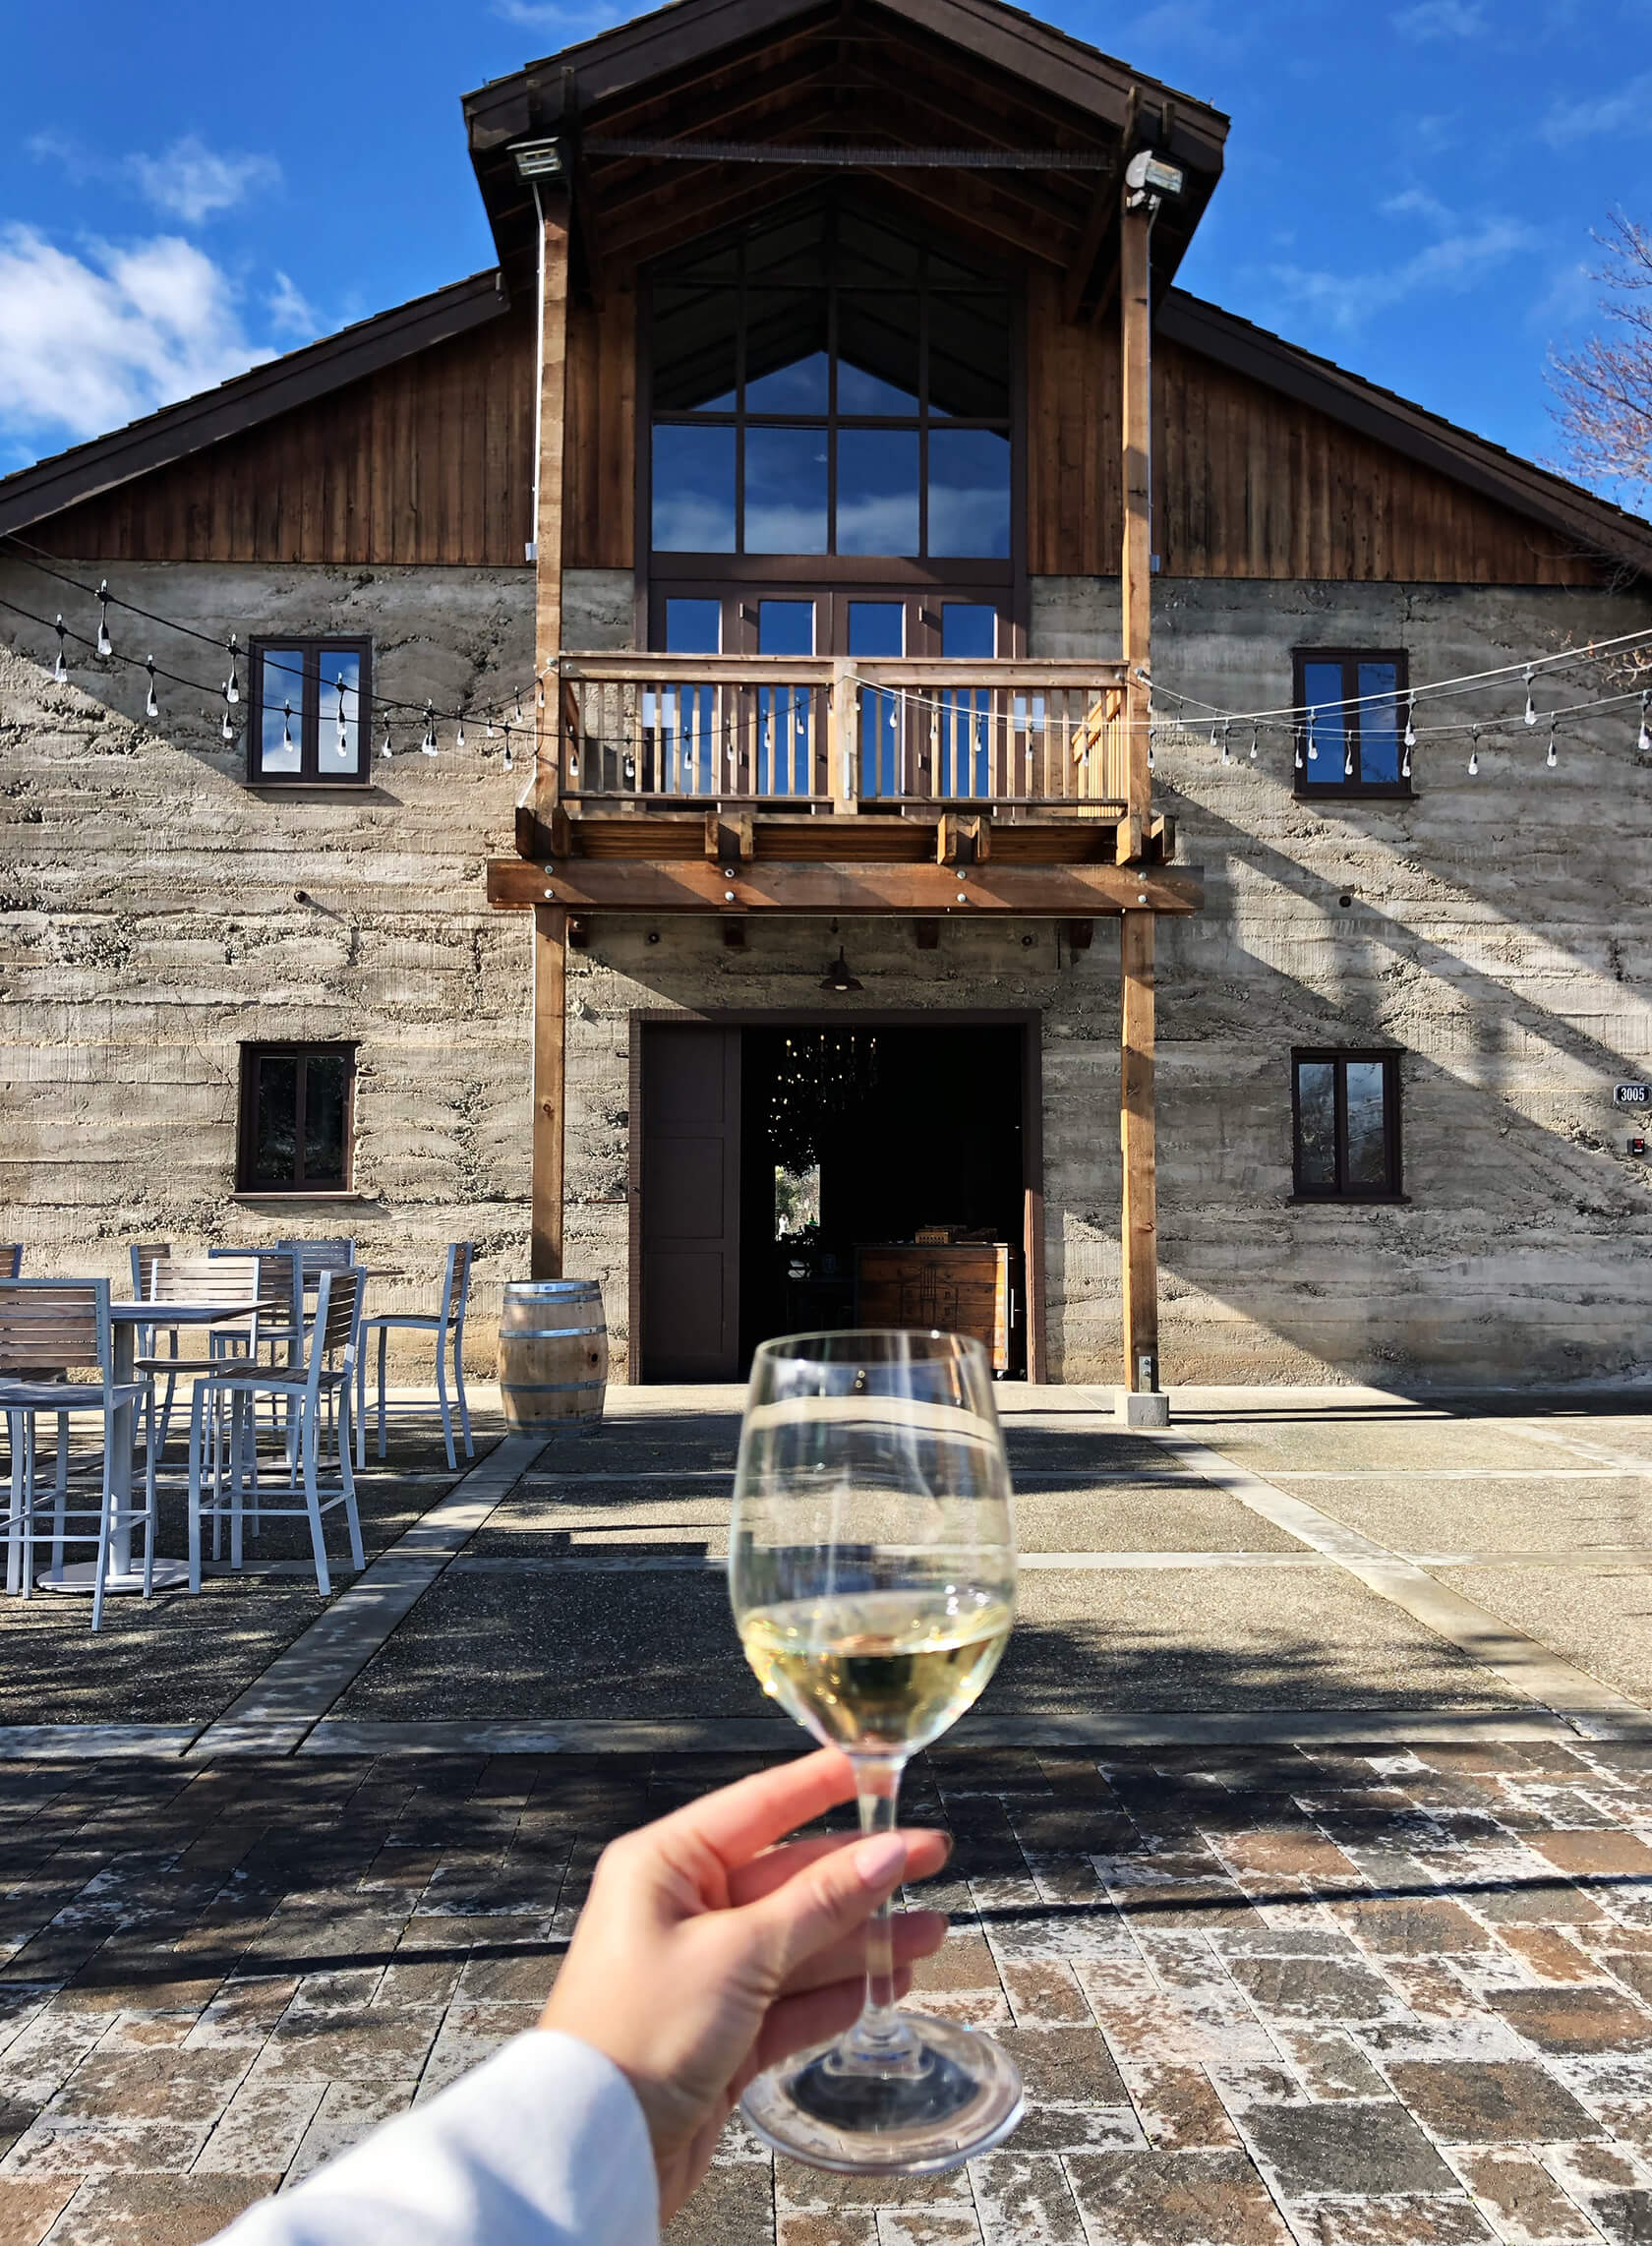 Sydne Style reviews Livermore Valley Wine Country with prettiest event location at murrieta's well